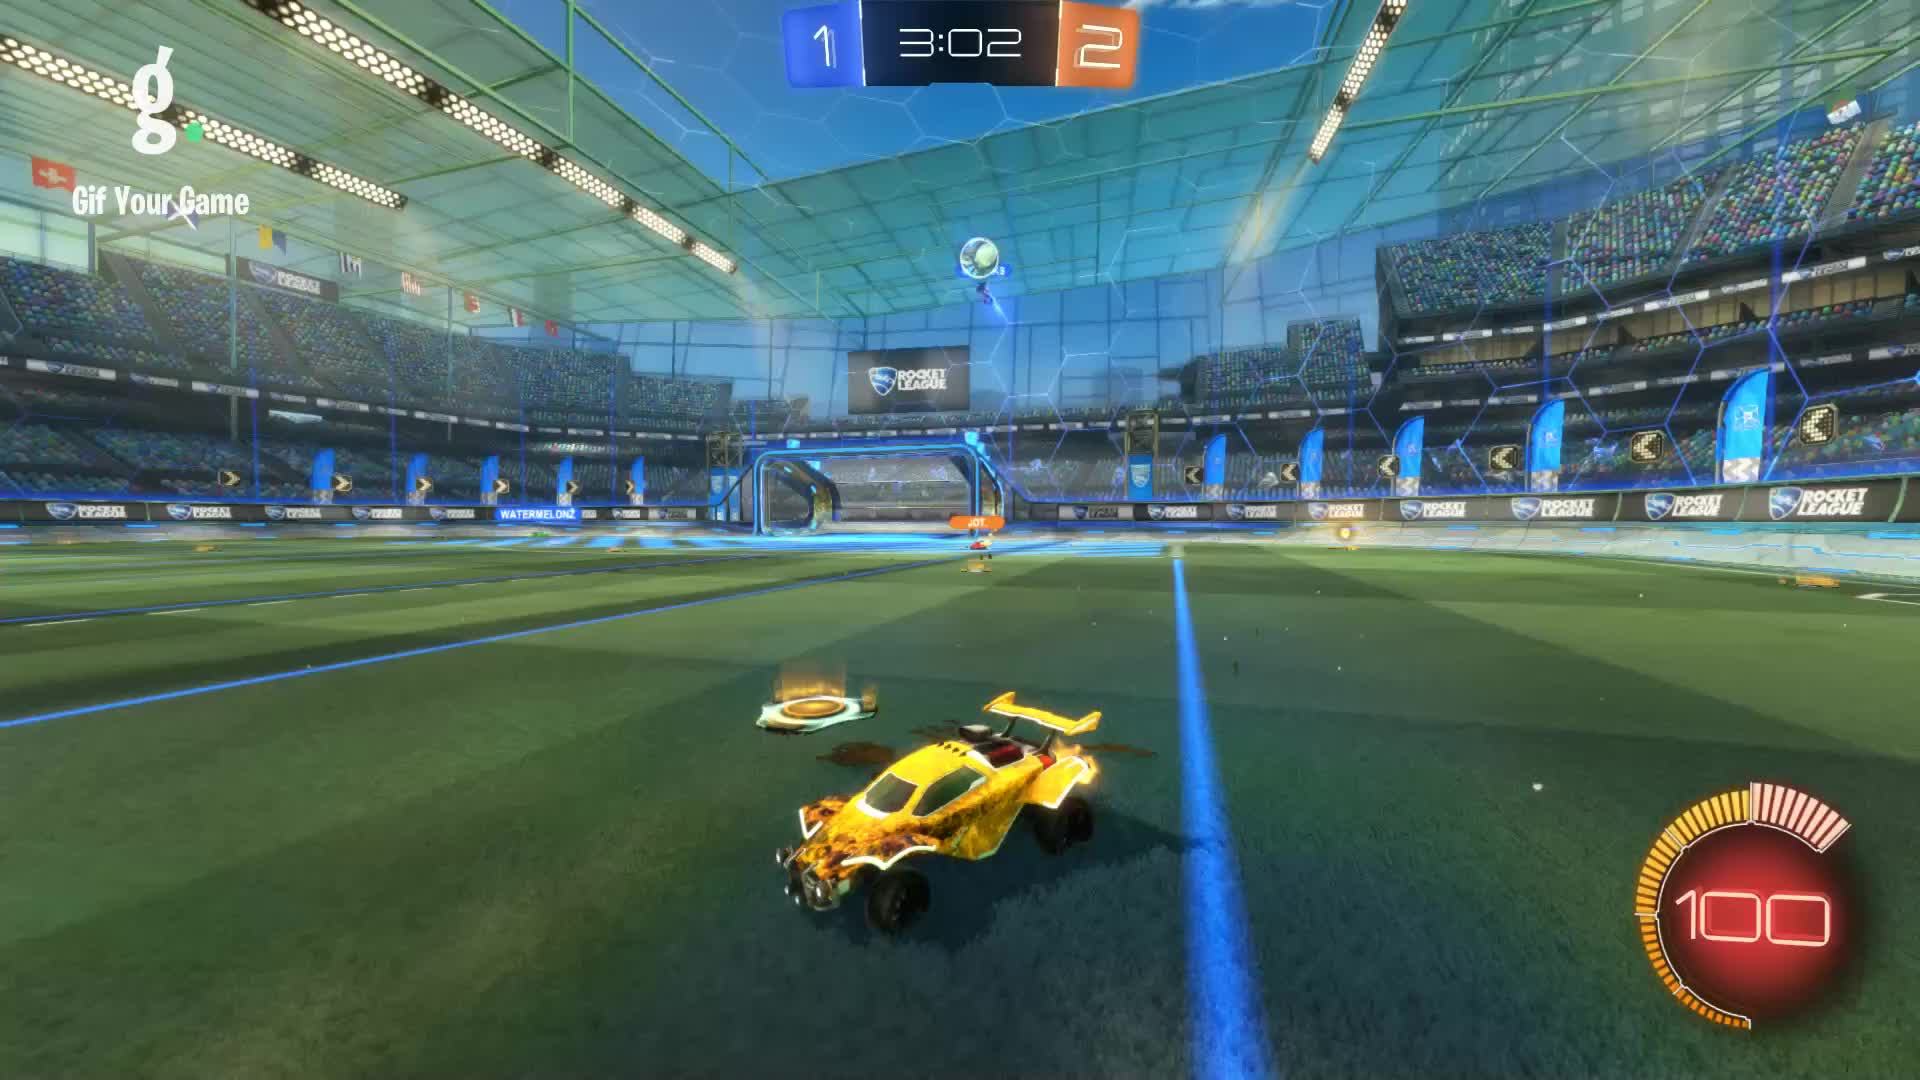 Gif Your Game, GifYourGame, Goal, Prospect, Rocket League, RocketLeague, Goal 4: Prospect GIFs